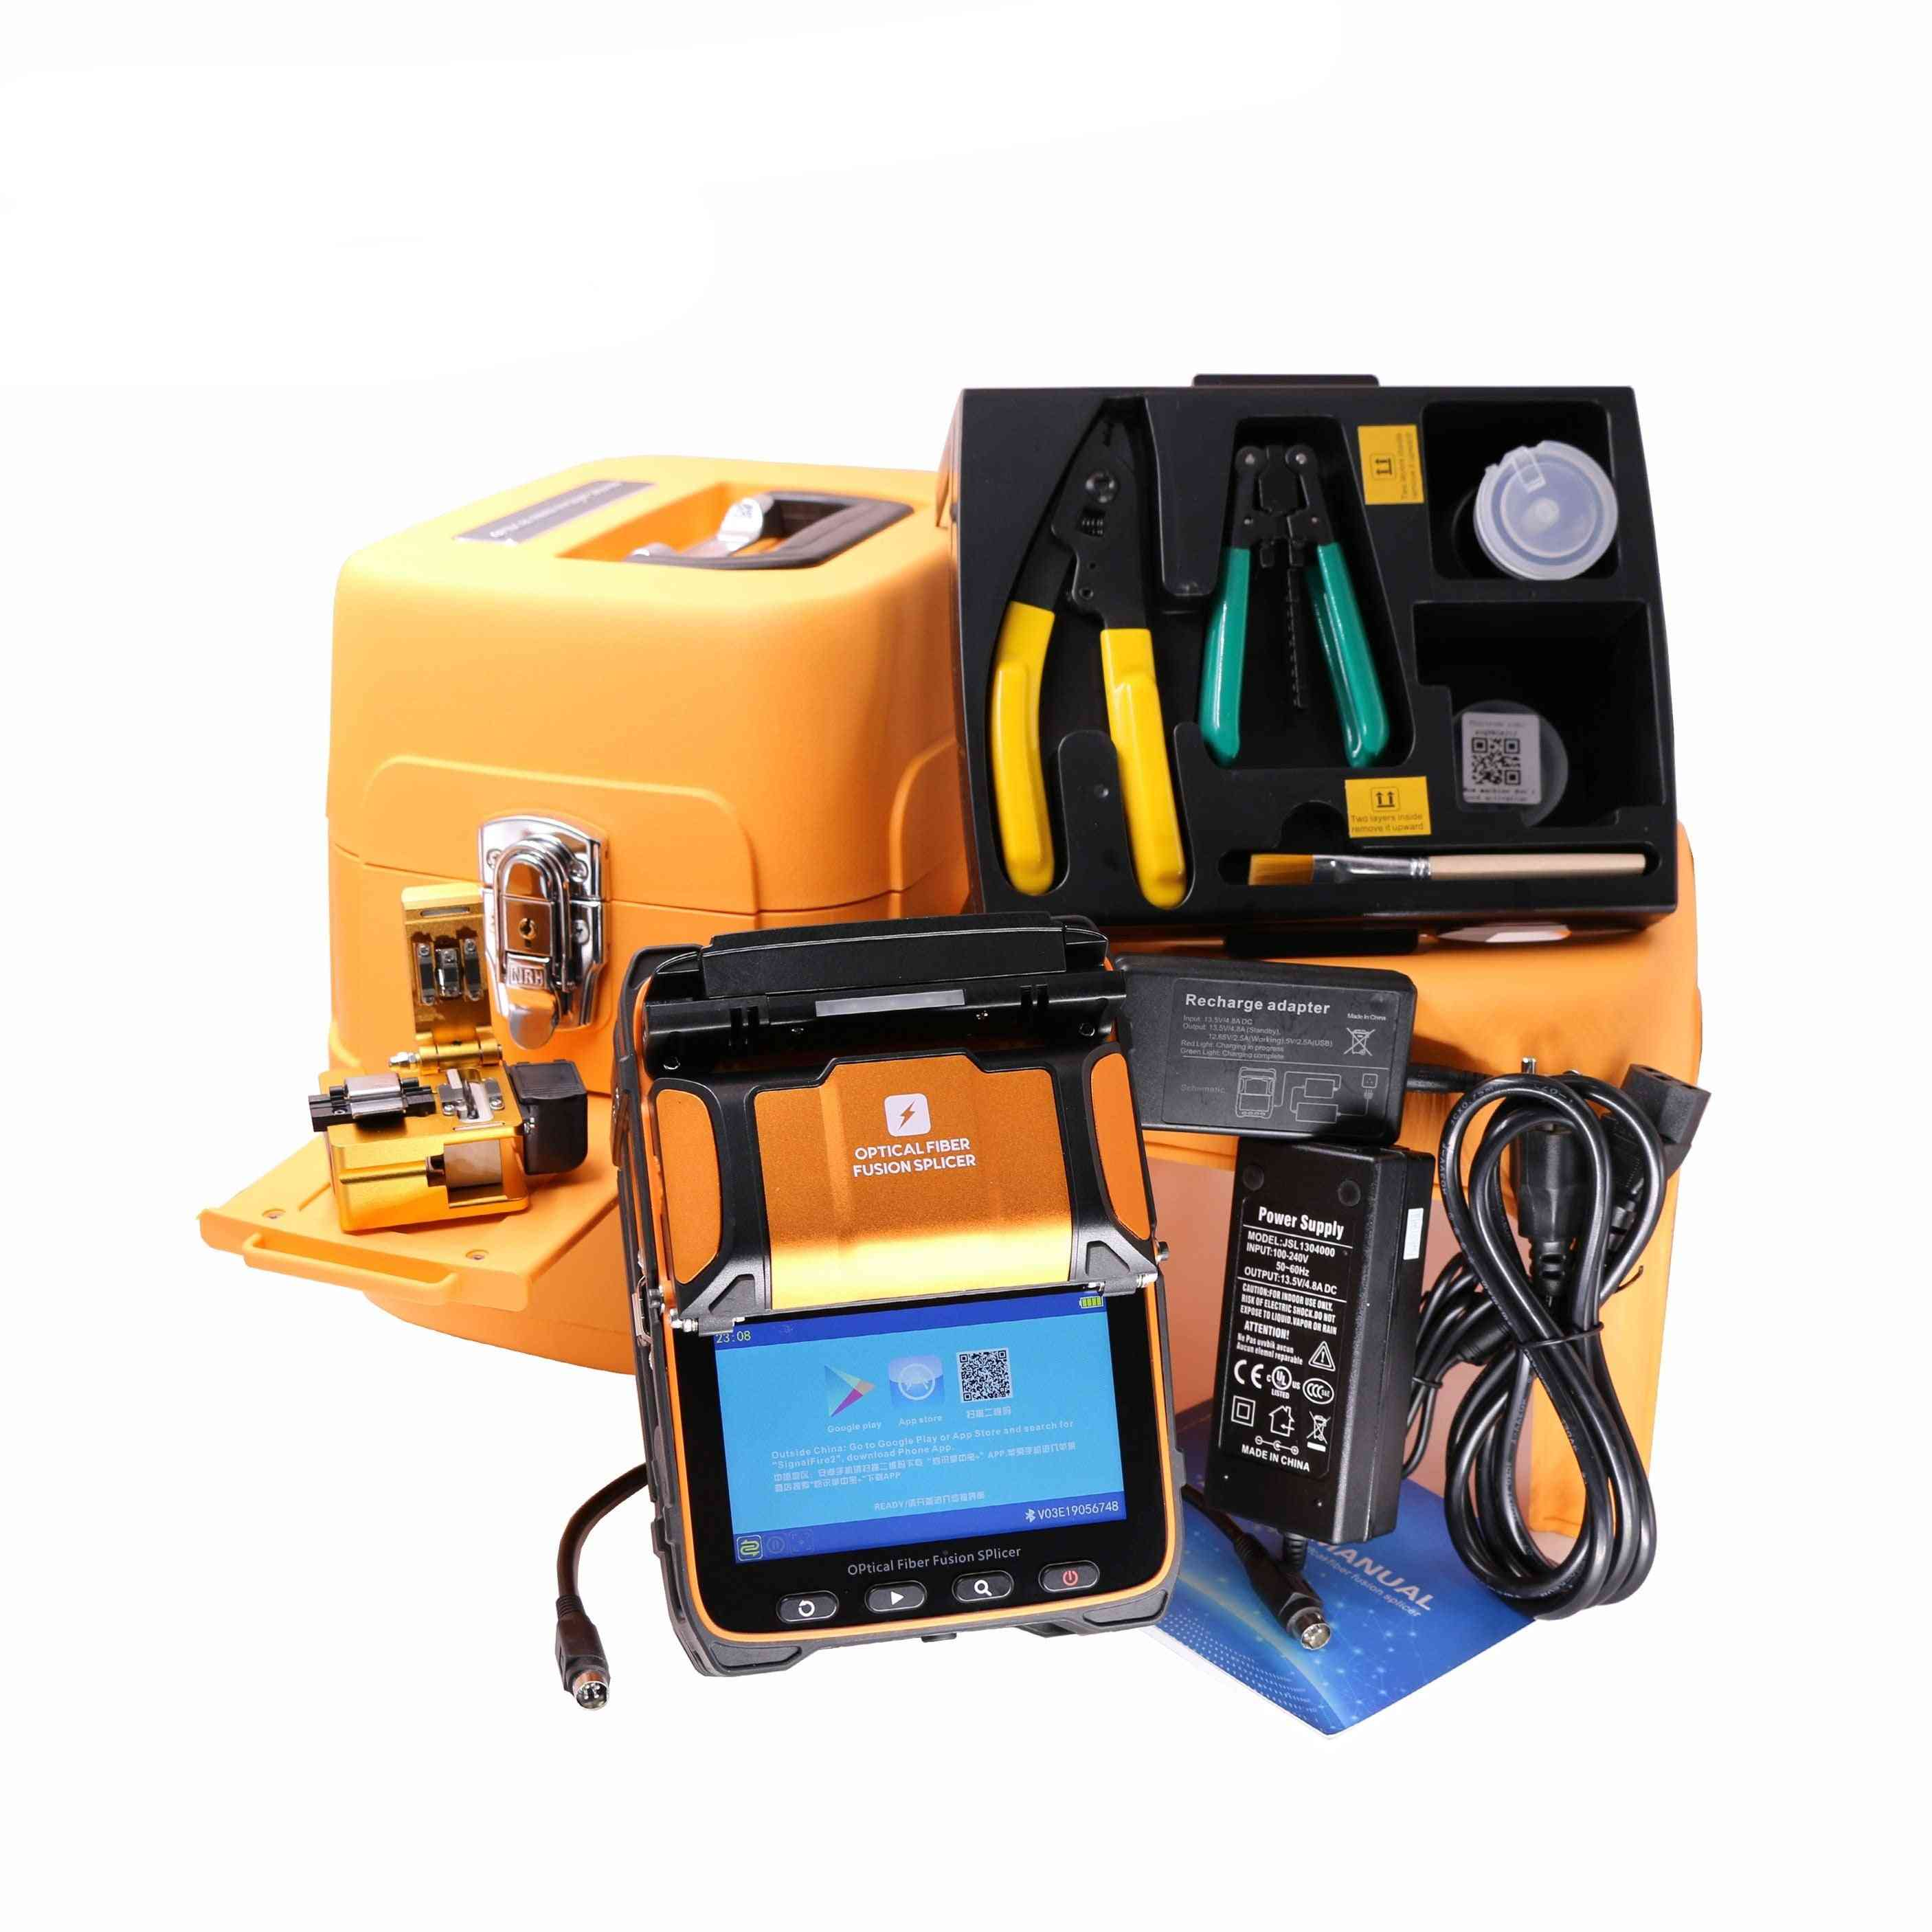 5s Ai-9 Fusion 6 Motors Splicer Machine With Vfl Opm Tool Kits